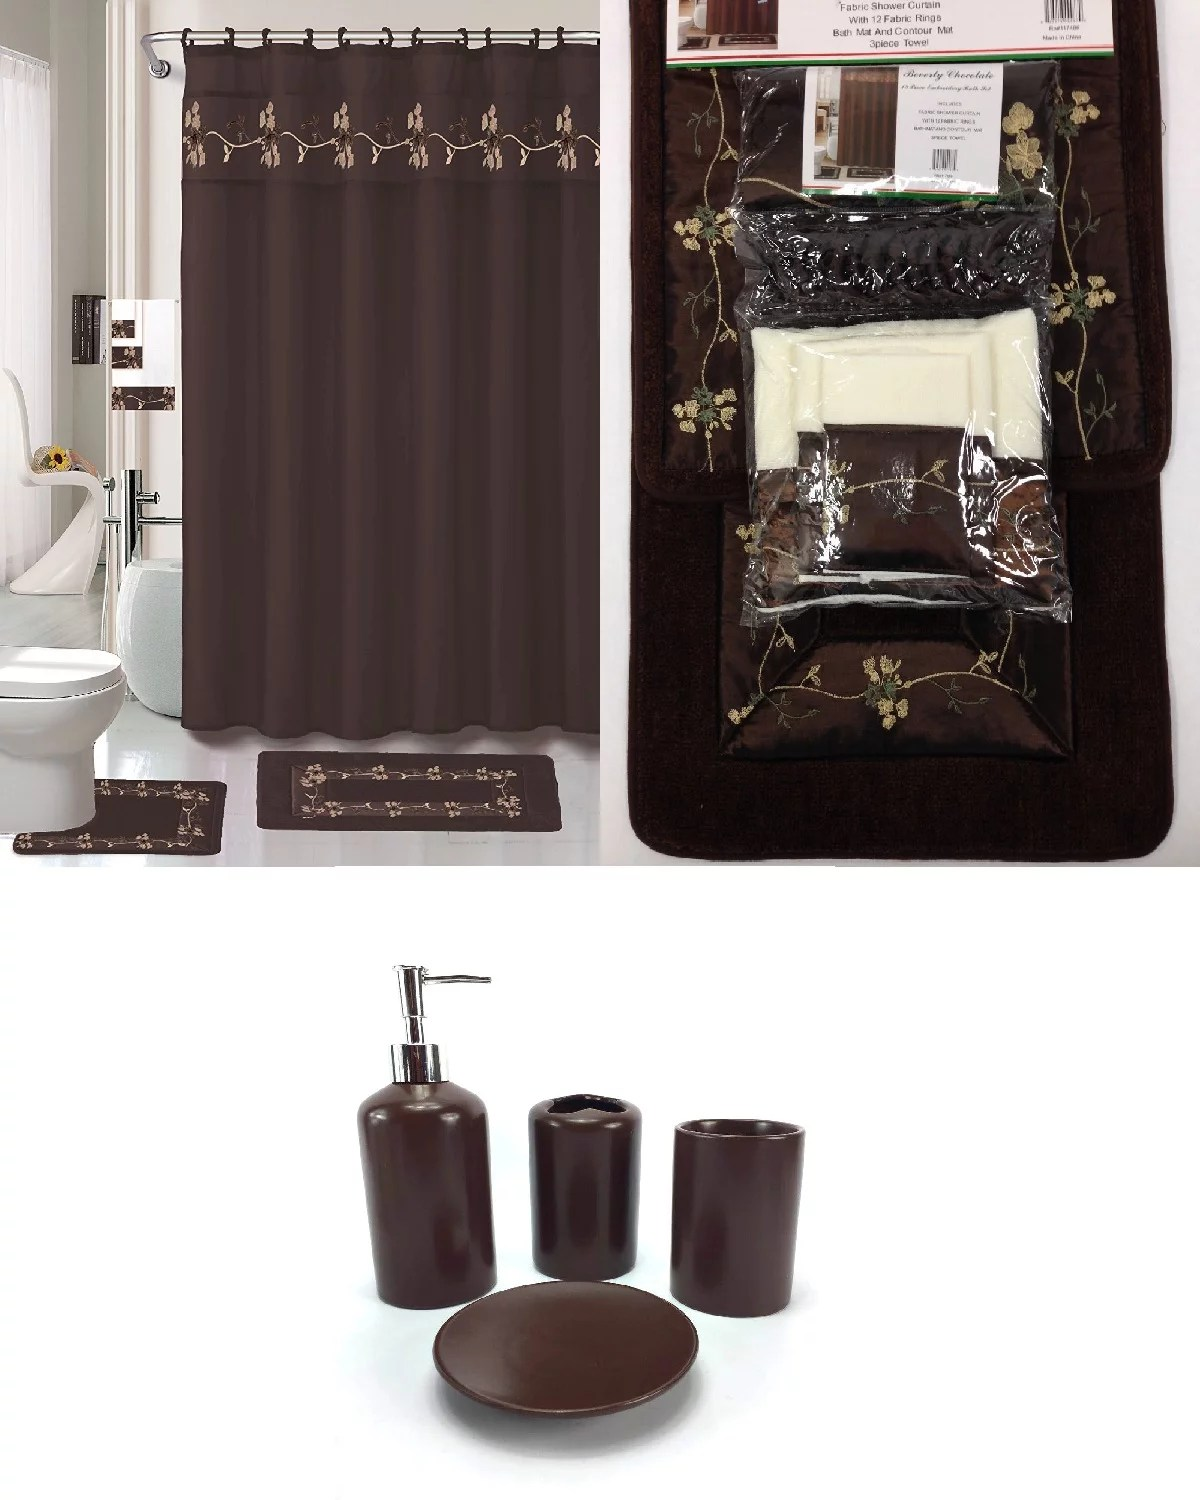 22 piece bath accessory set beverly chocolate brown bathroom rug set shower curtain accessories walmart com